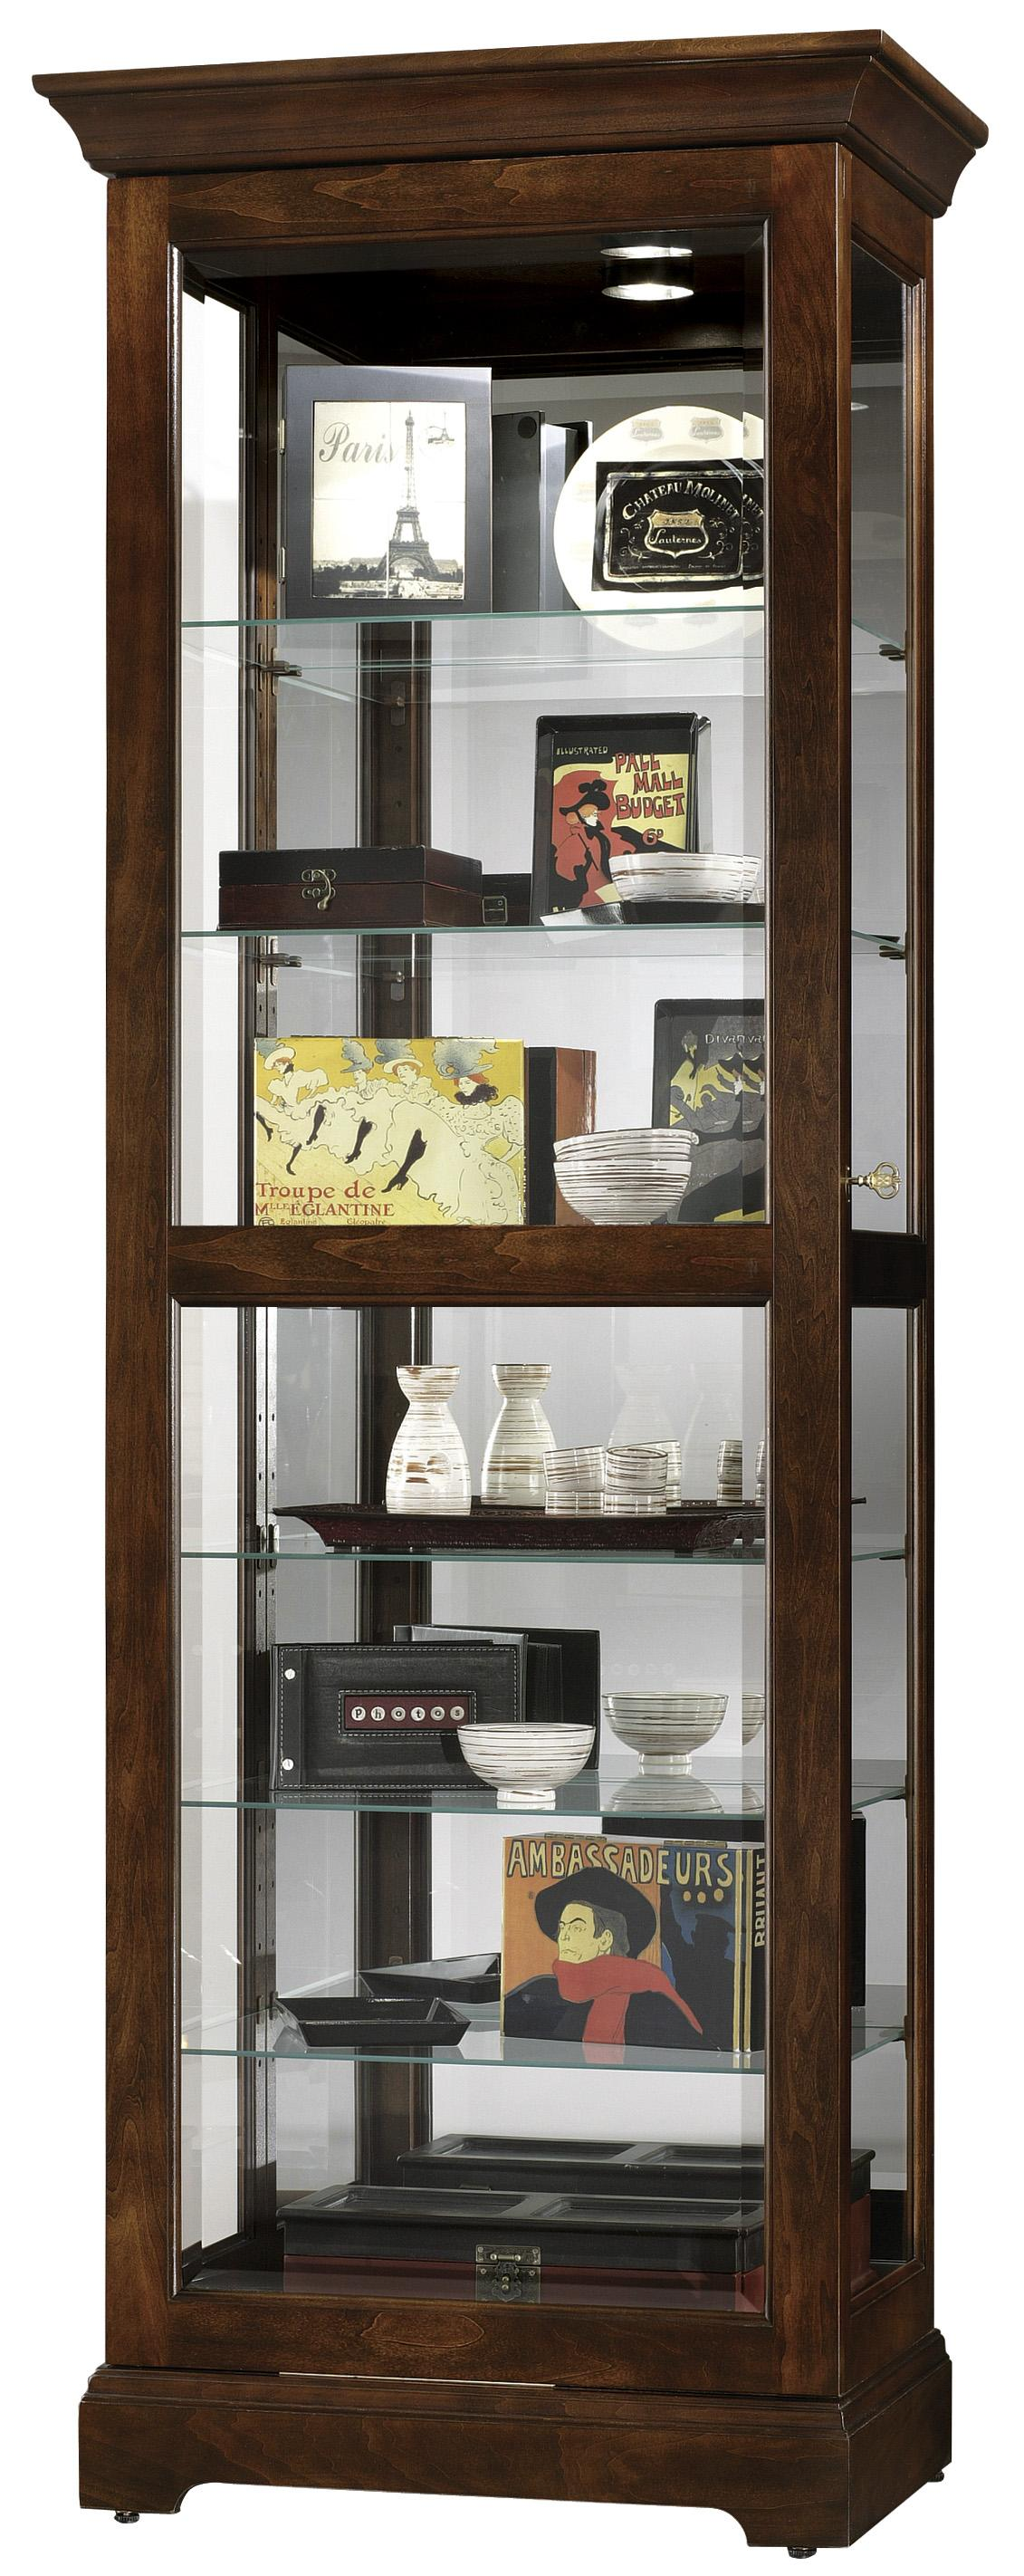 Howard Miller Furniture Trend Designs Curios Martindale Display Cabinet - Item Number: 680-469